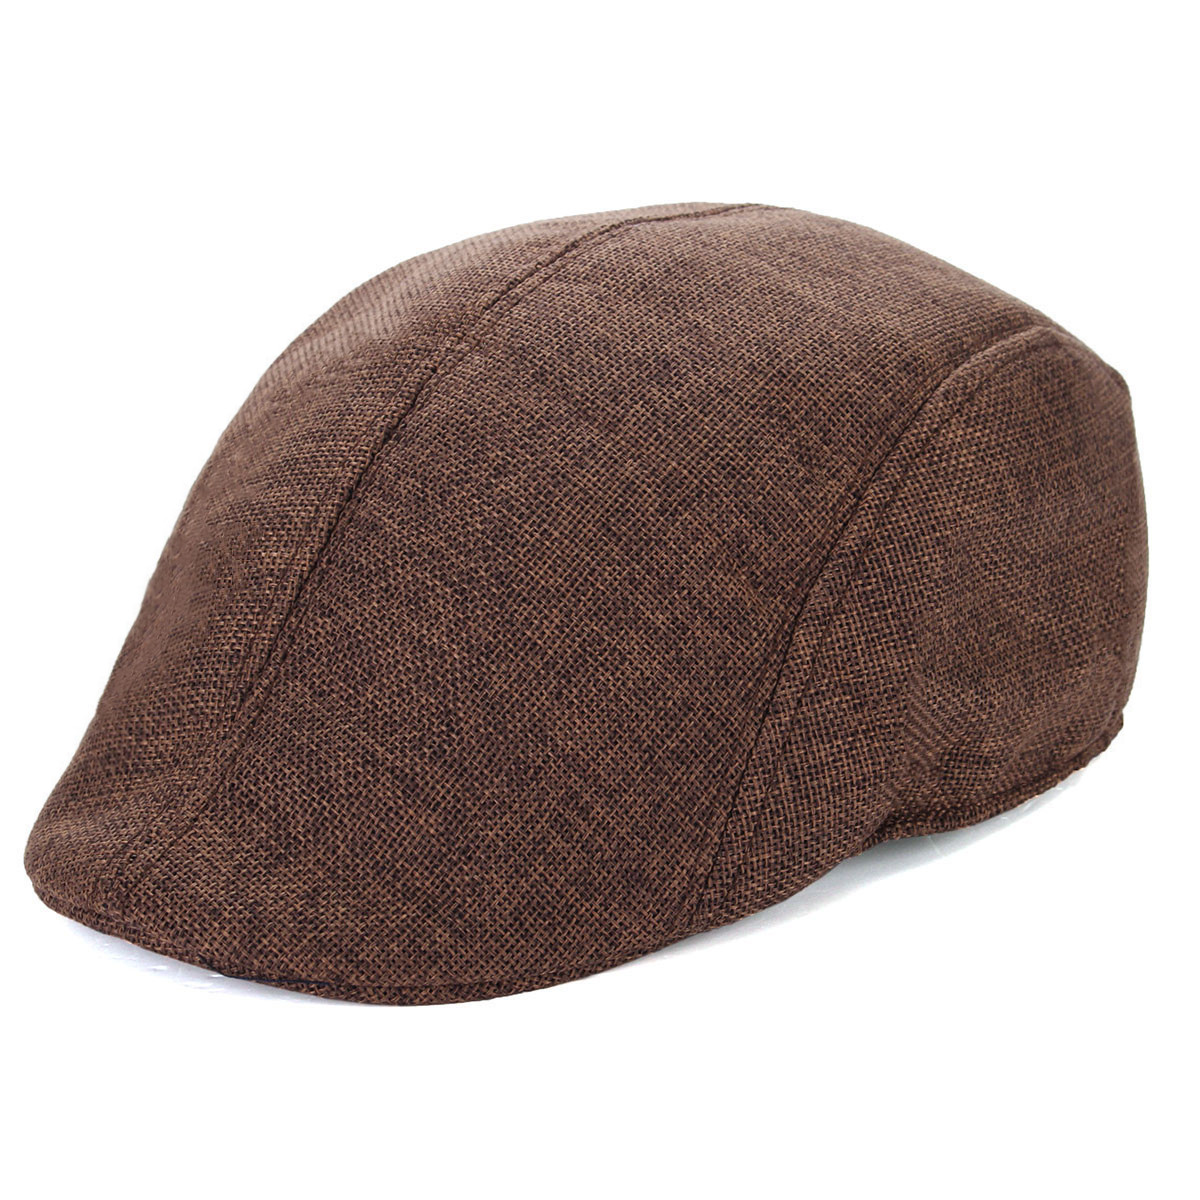 Mens Herringbone Flat Hat Peaked Racing Country Golf Newsboy Beret Cap